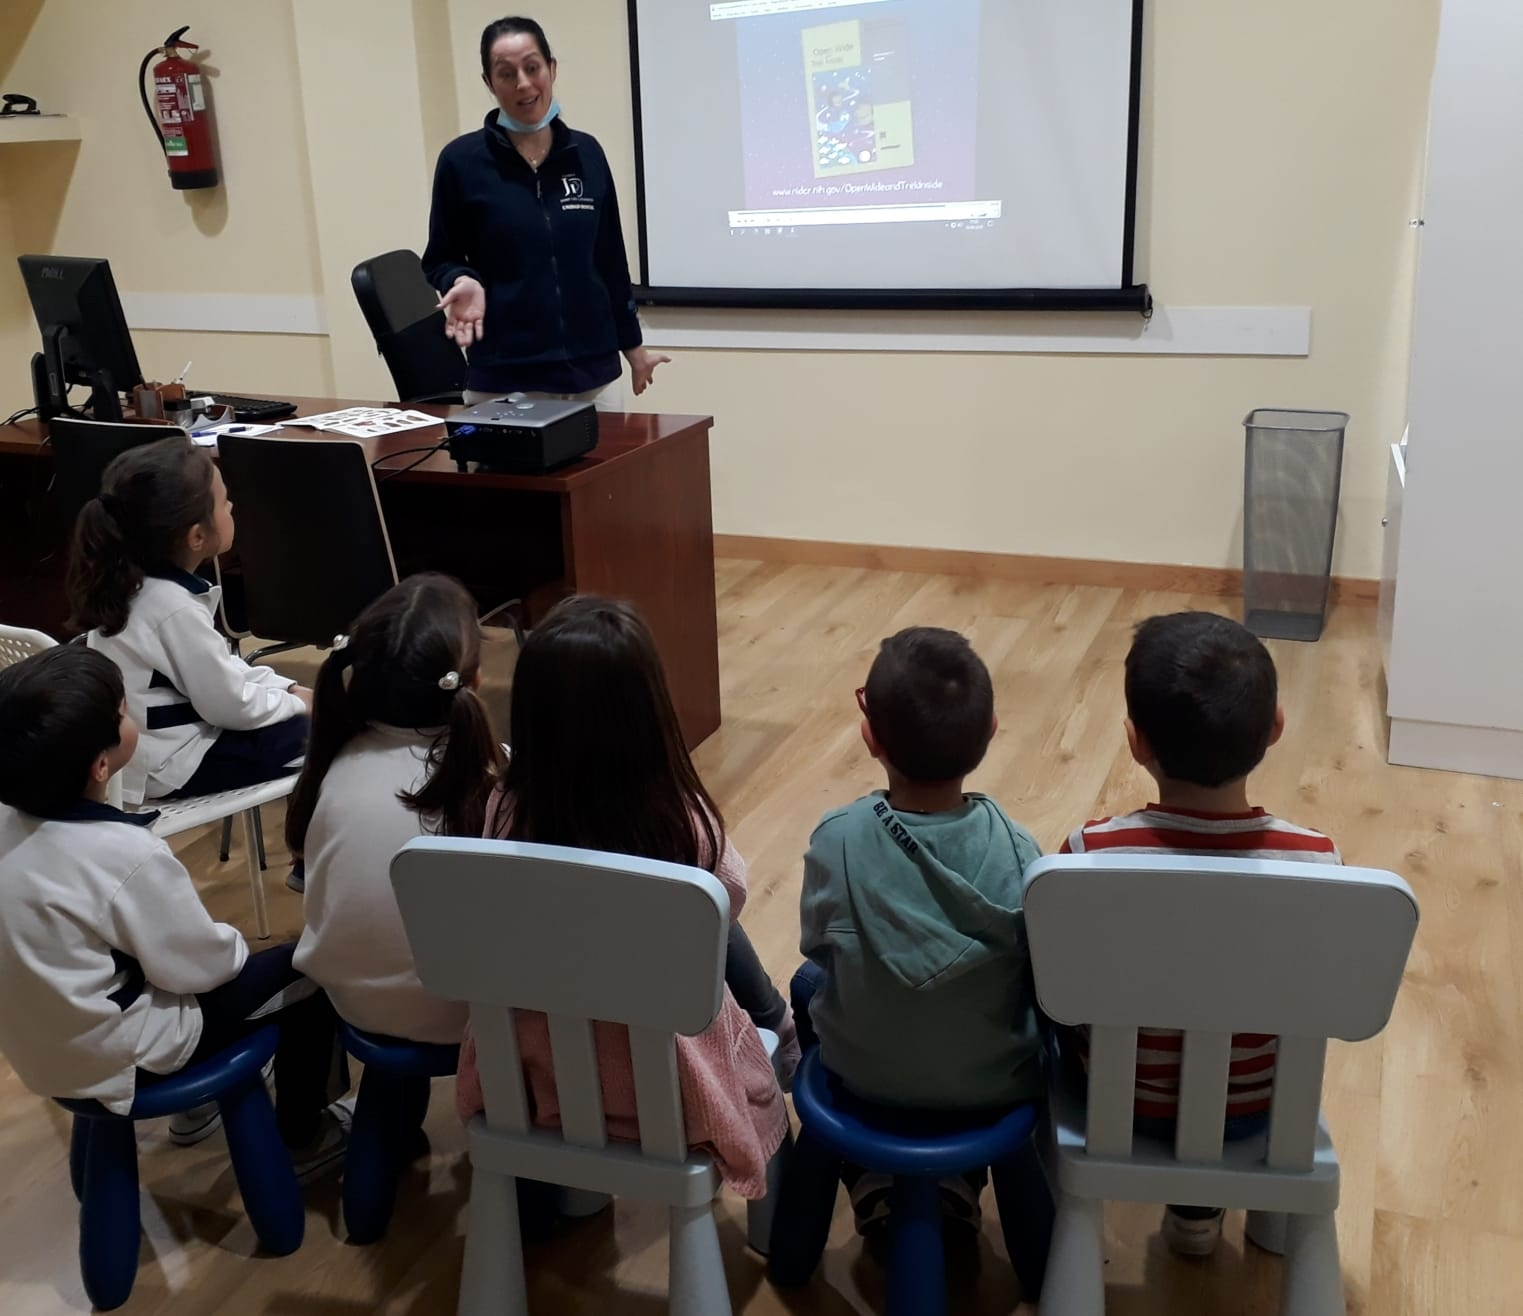 taller dental clinica jaime i catarroja